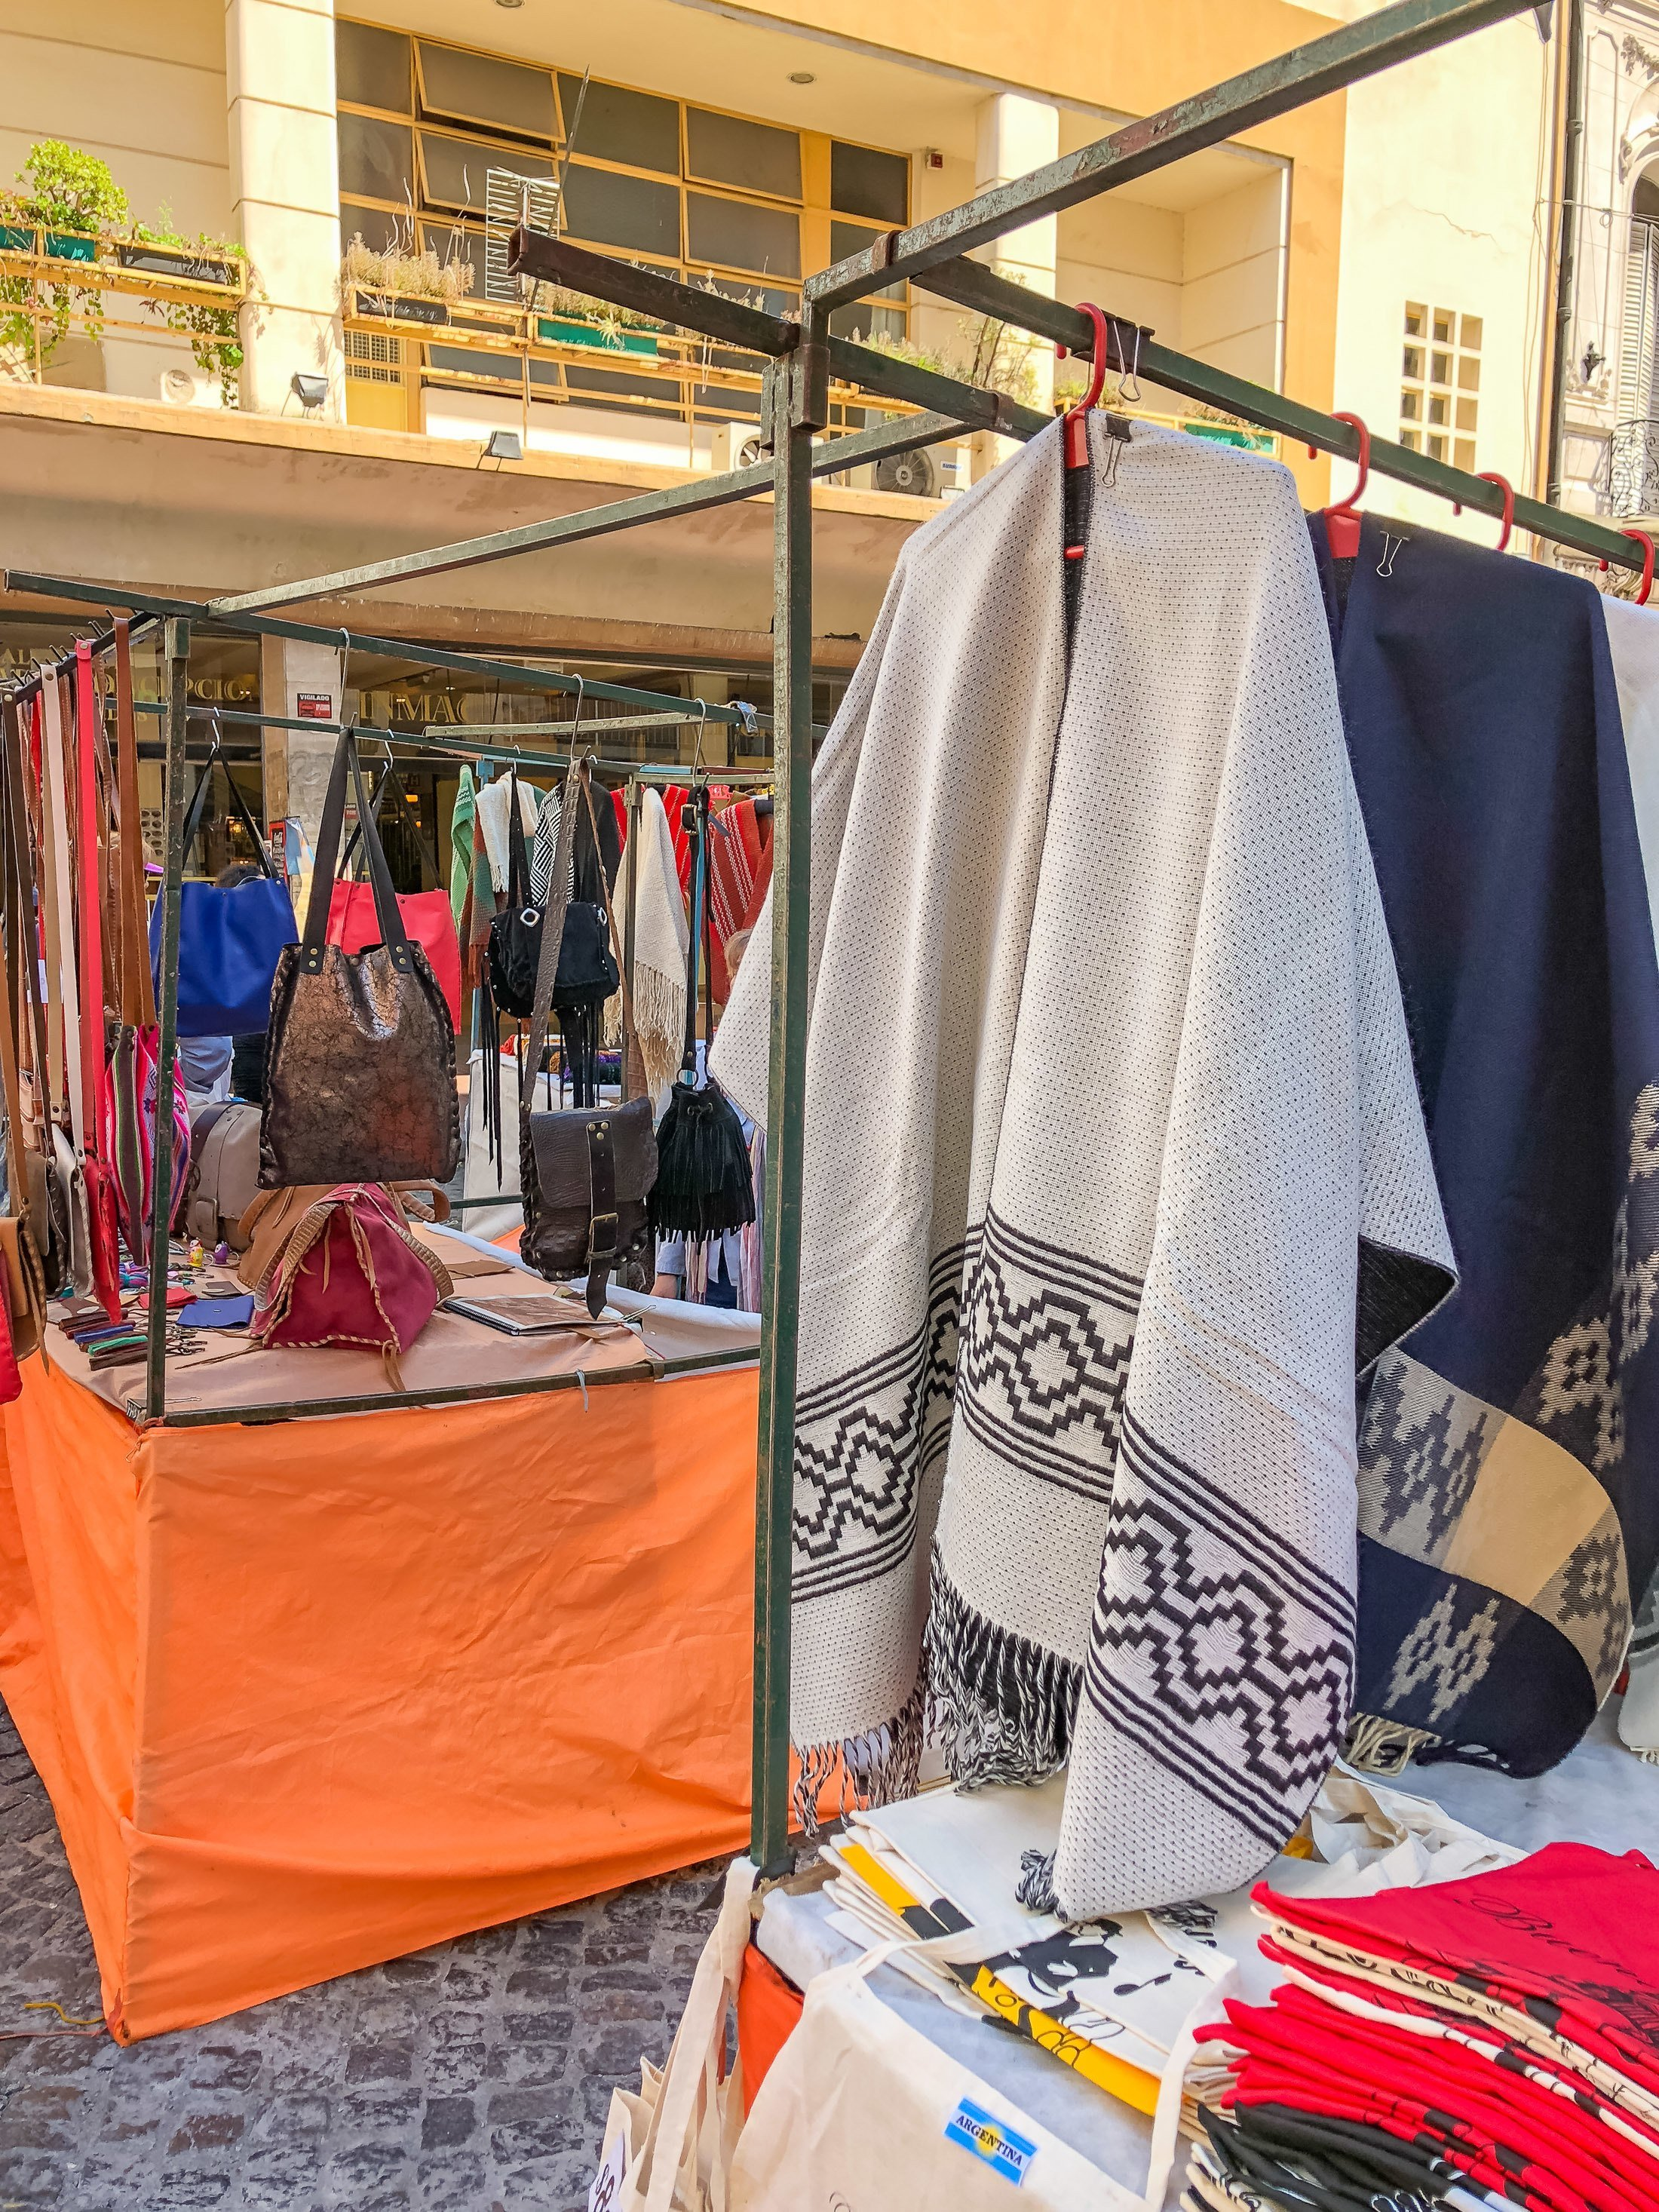 Leather goods and ponchos at the San Telmo Fair in Buenos Aires.